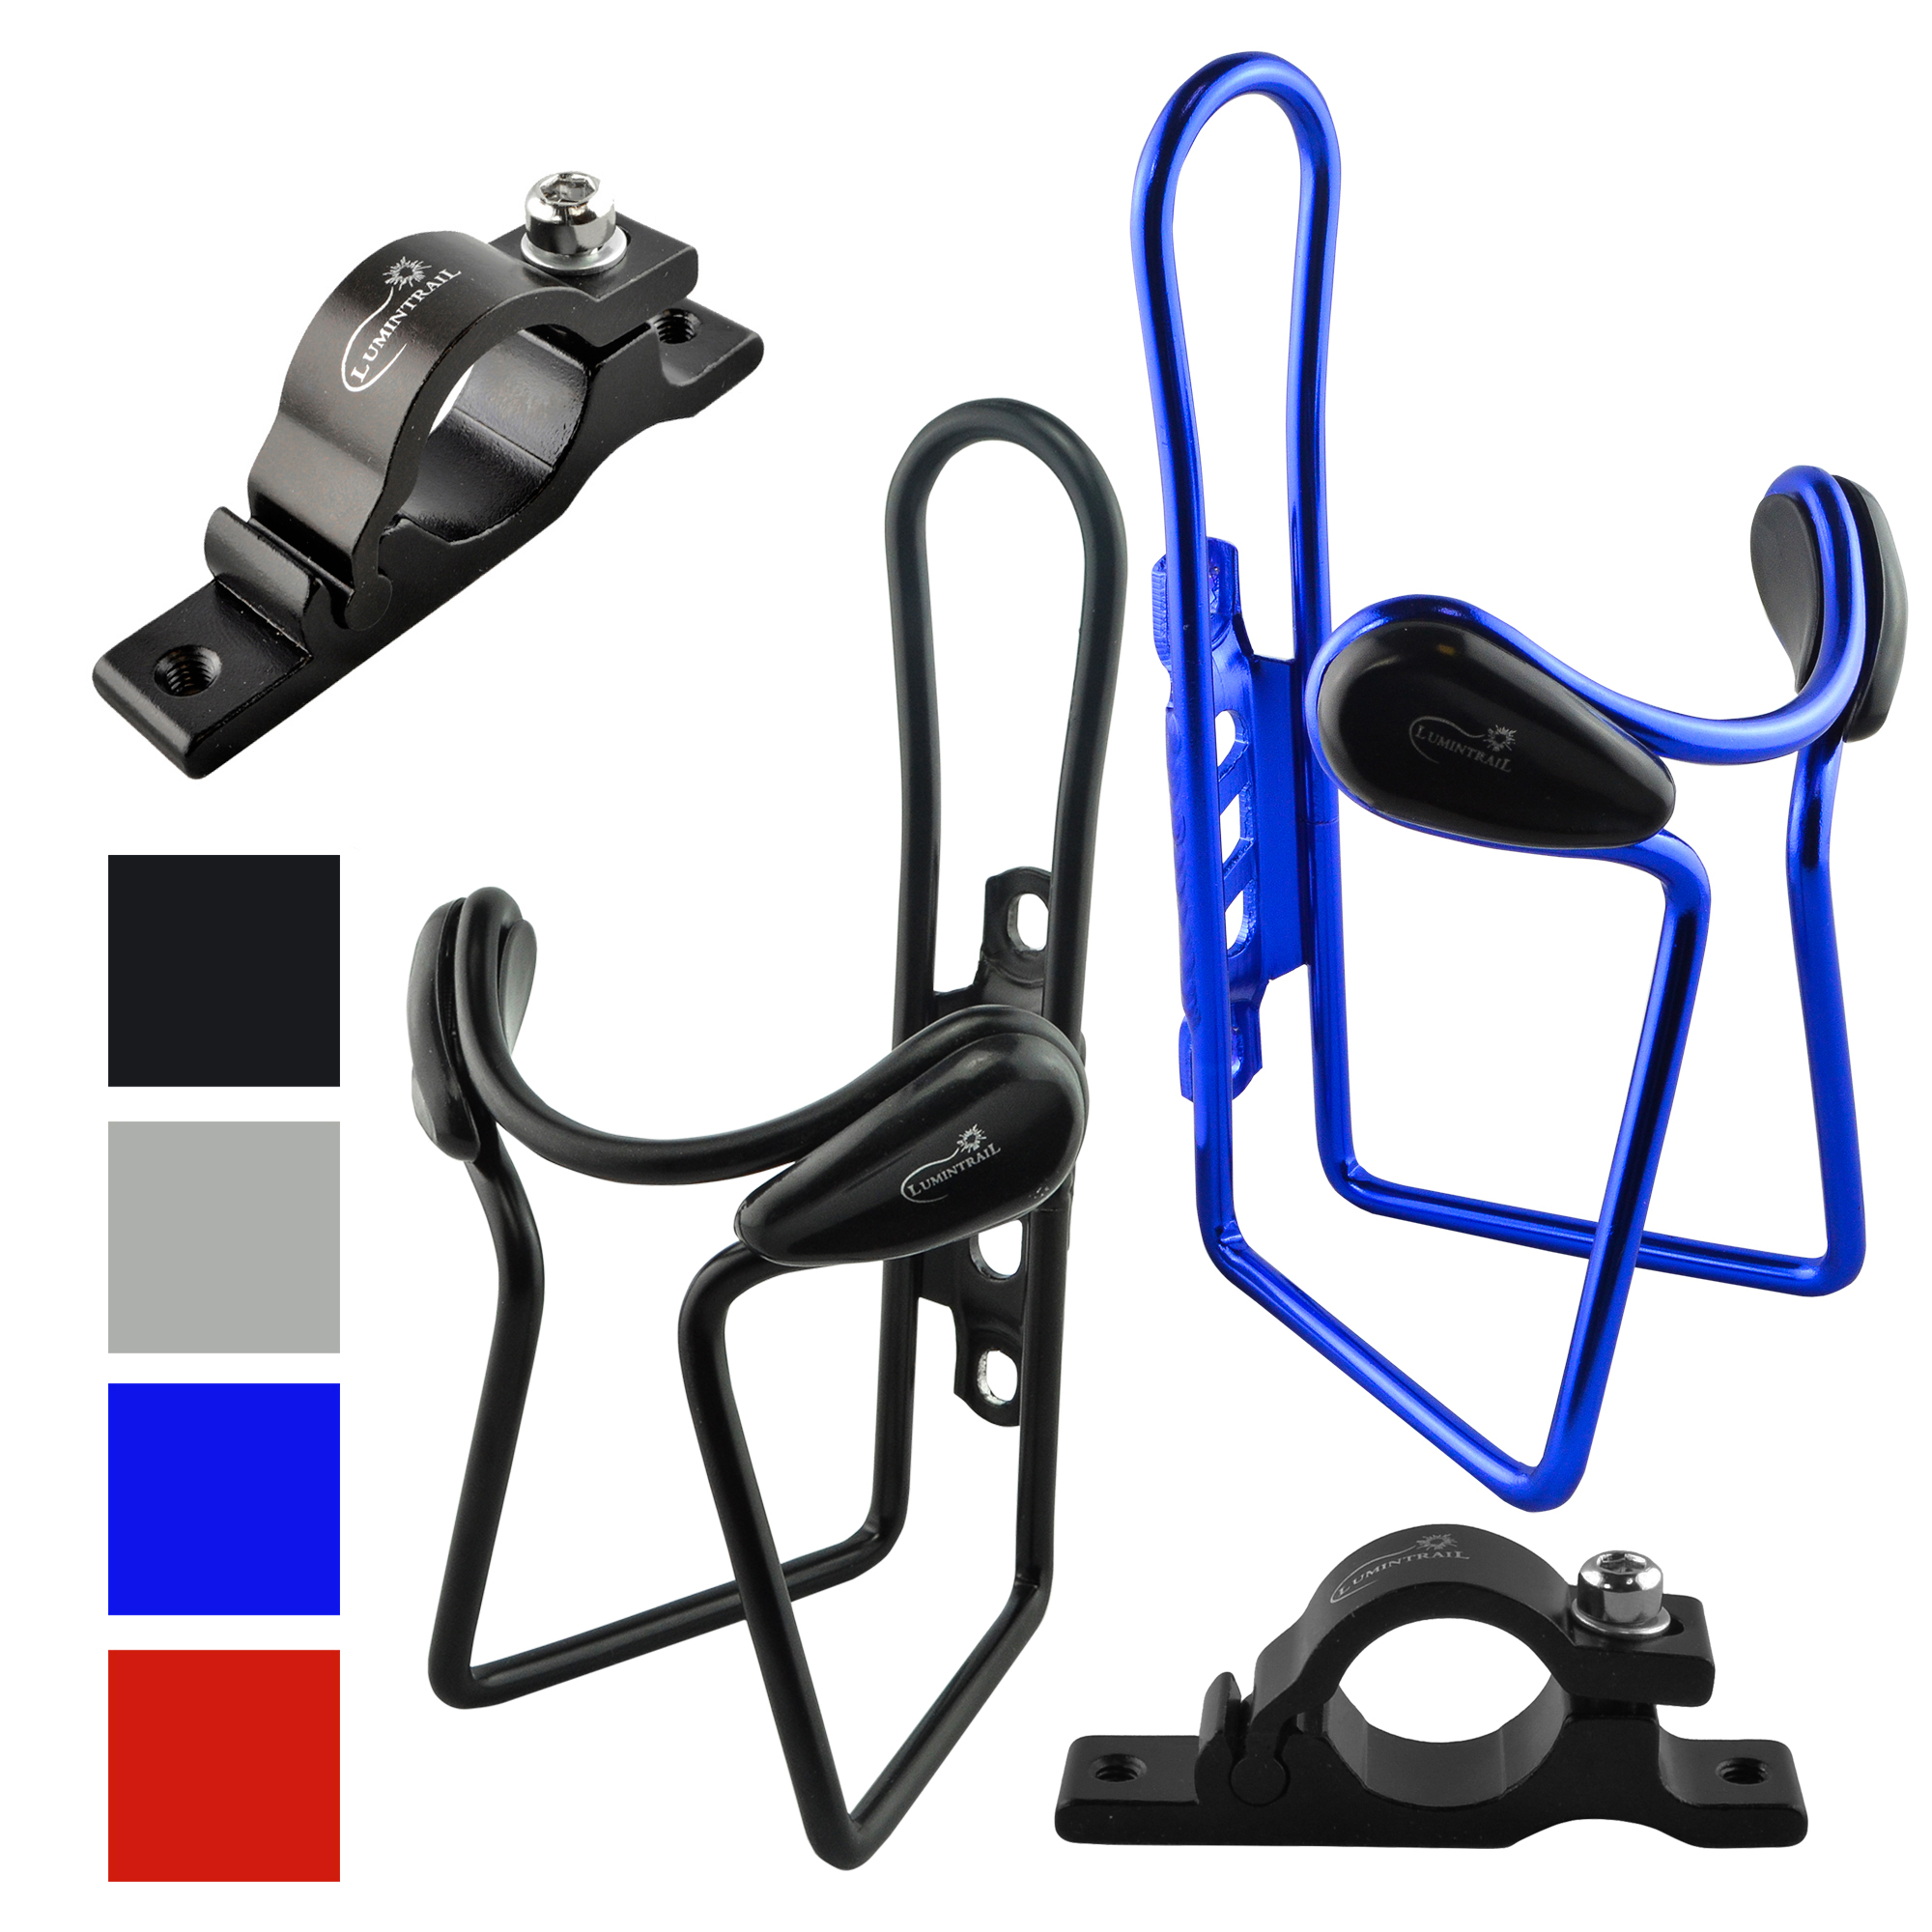 2-PACK Lumintrail Bike Bicycle Water Bottle Cage Holder w// Mounting Bracket